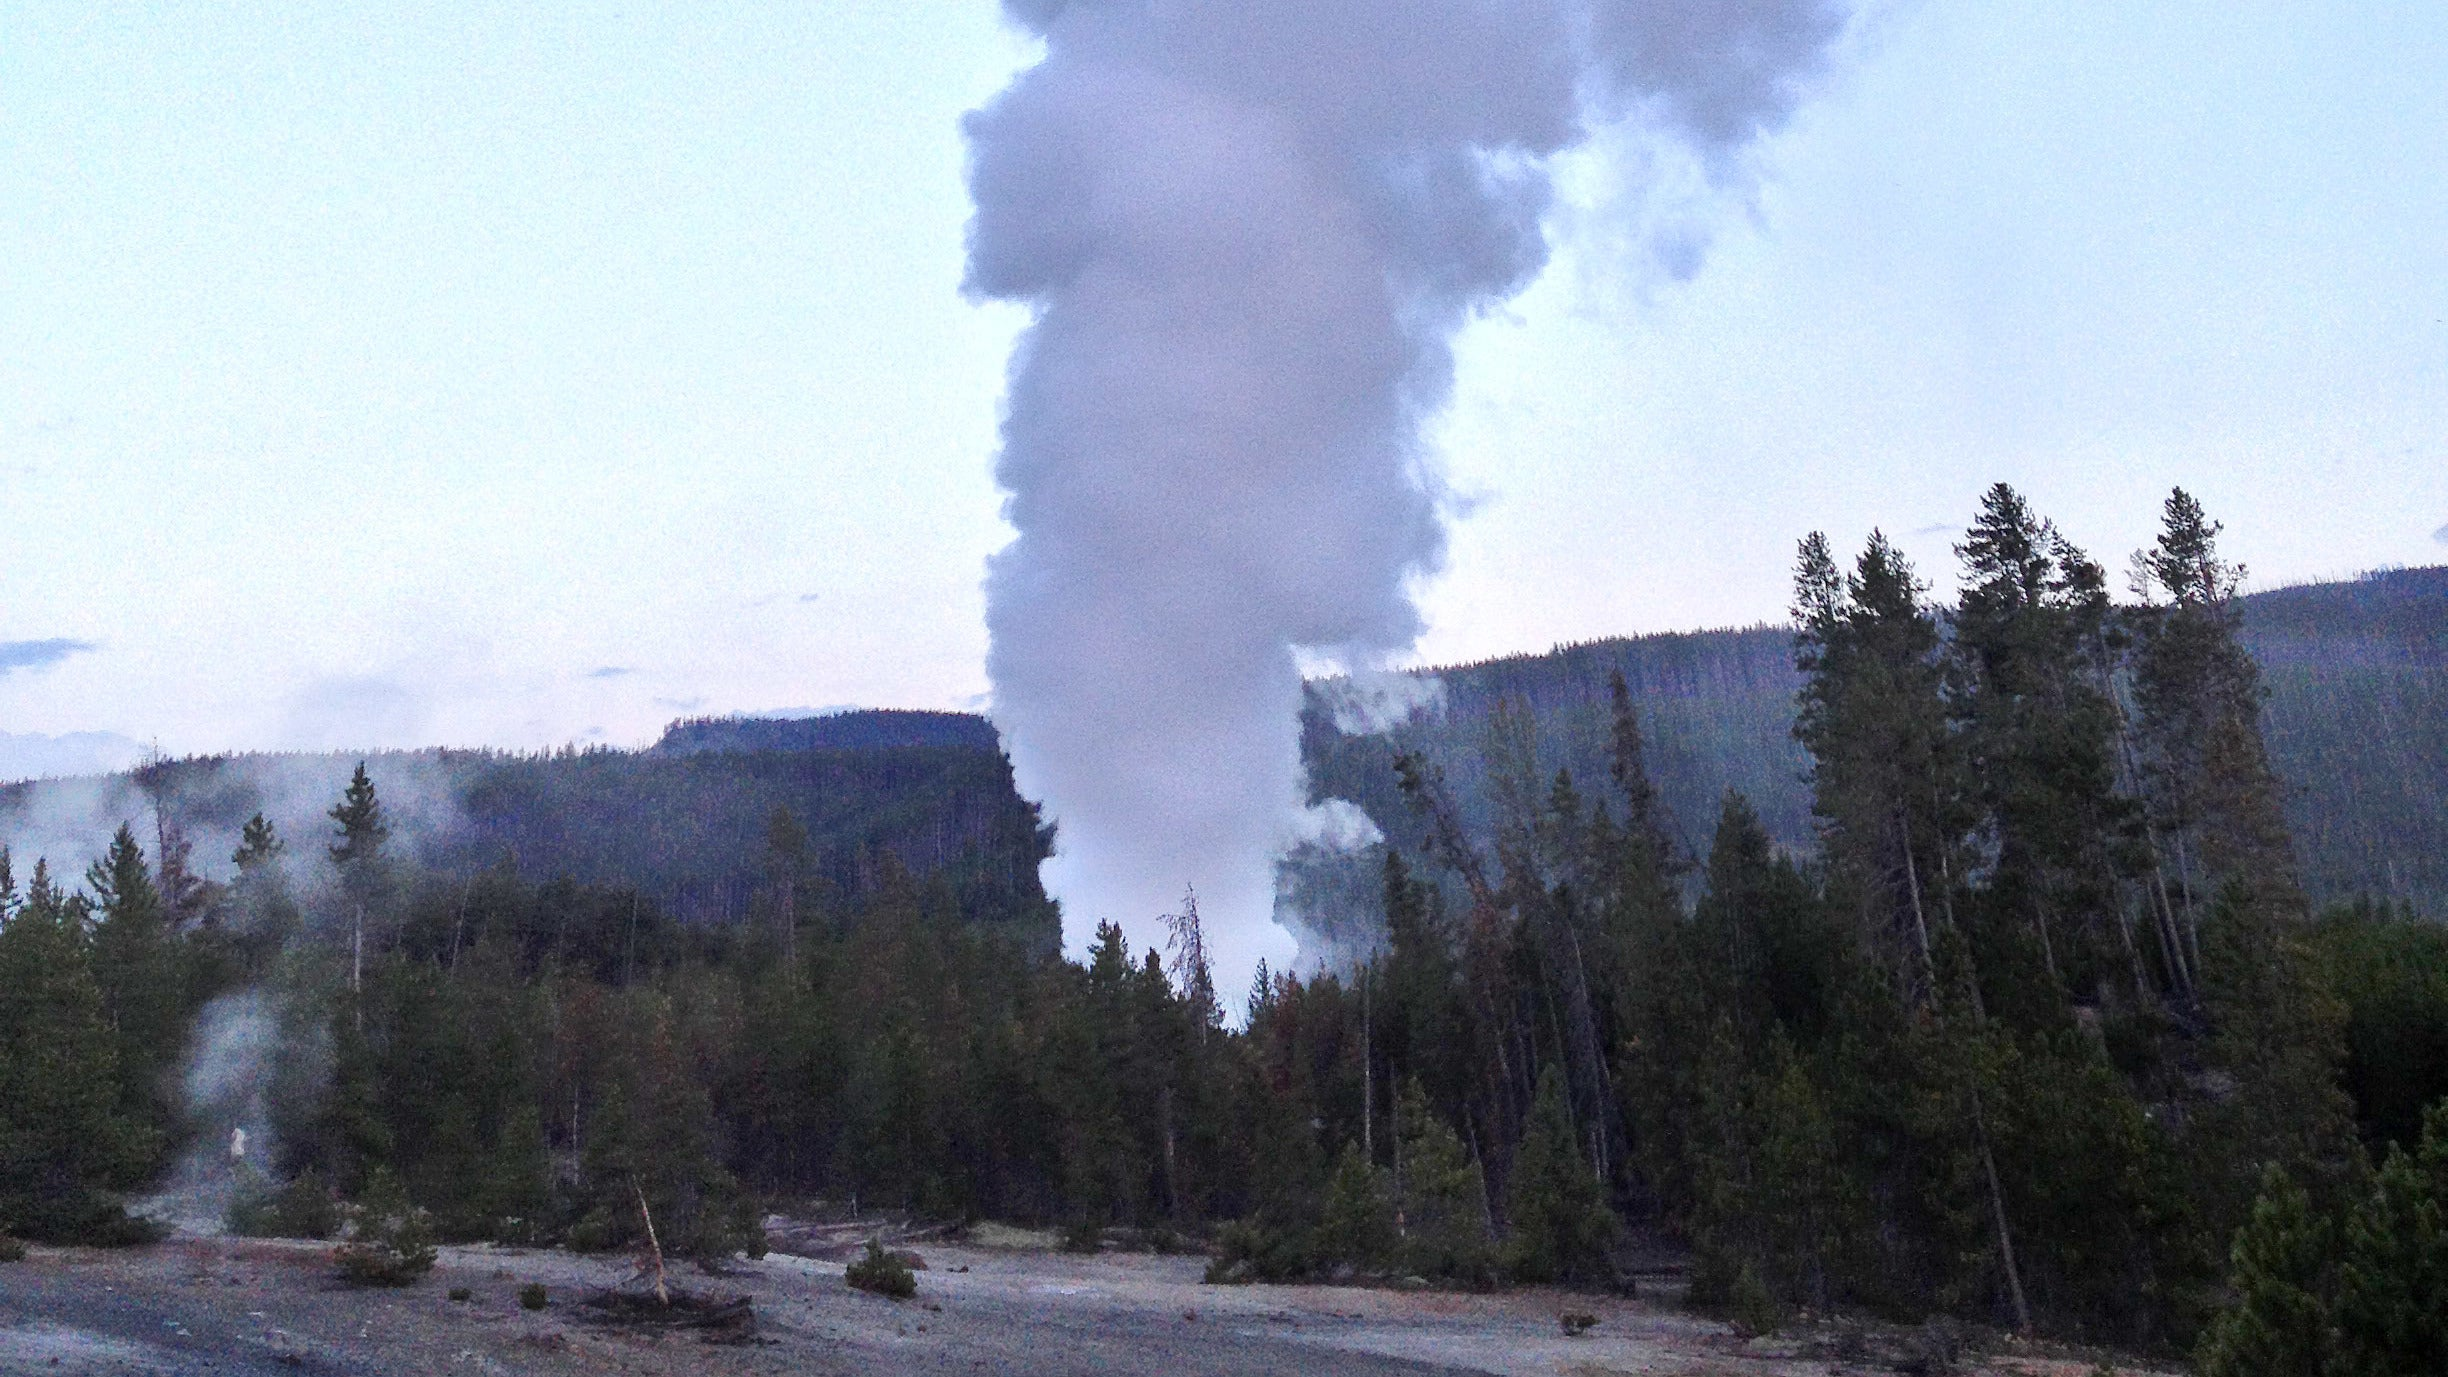 The World's Largest Active Geyser In Yellowstone Keeps Going Off, But It Isn't A Sign Of Imminent Doom